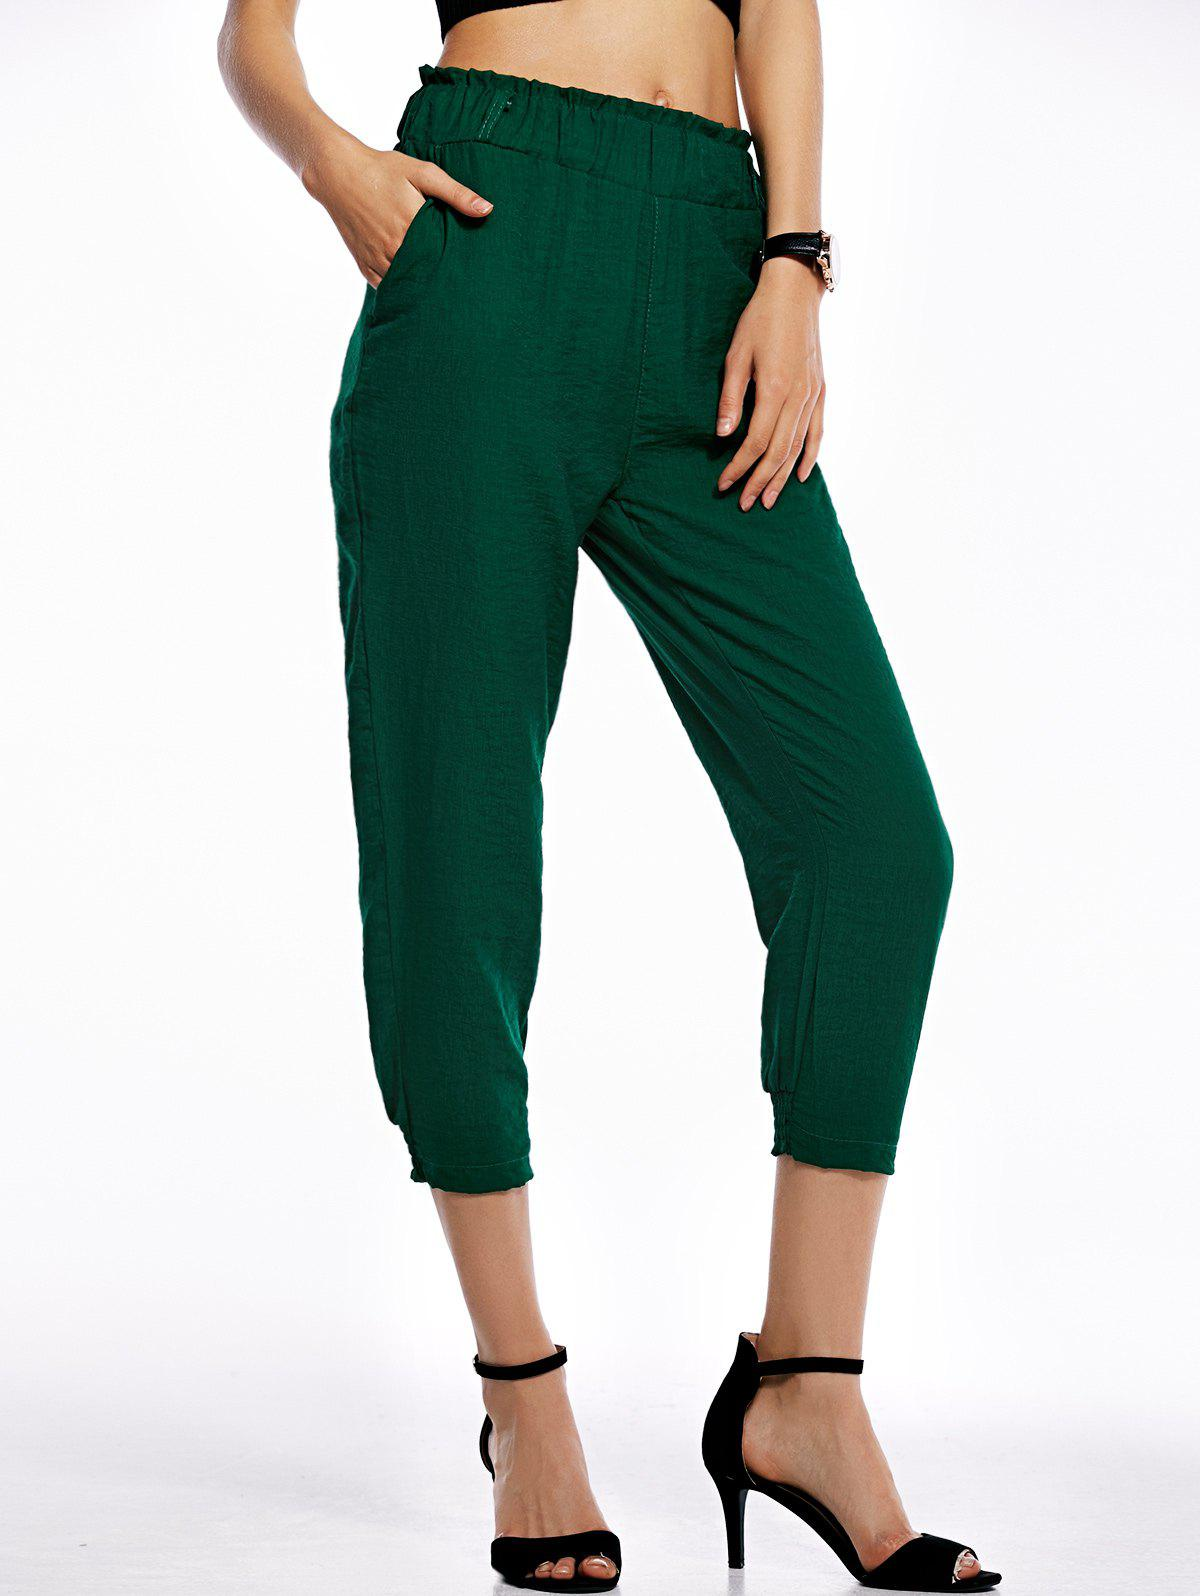 Casual Pure Color Loose Fittting Capri Pants For Women - DEEP GREEN L